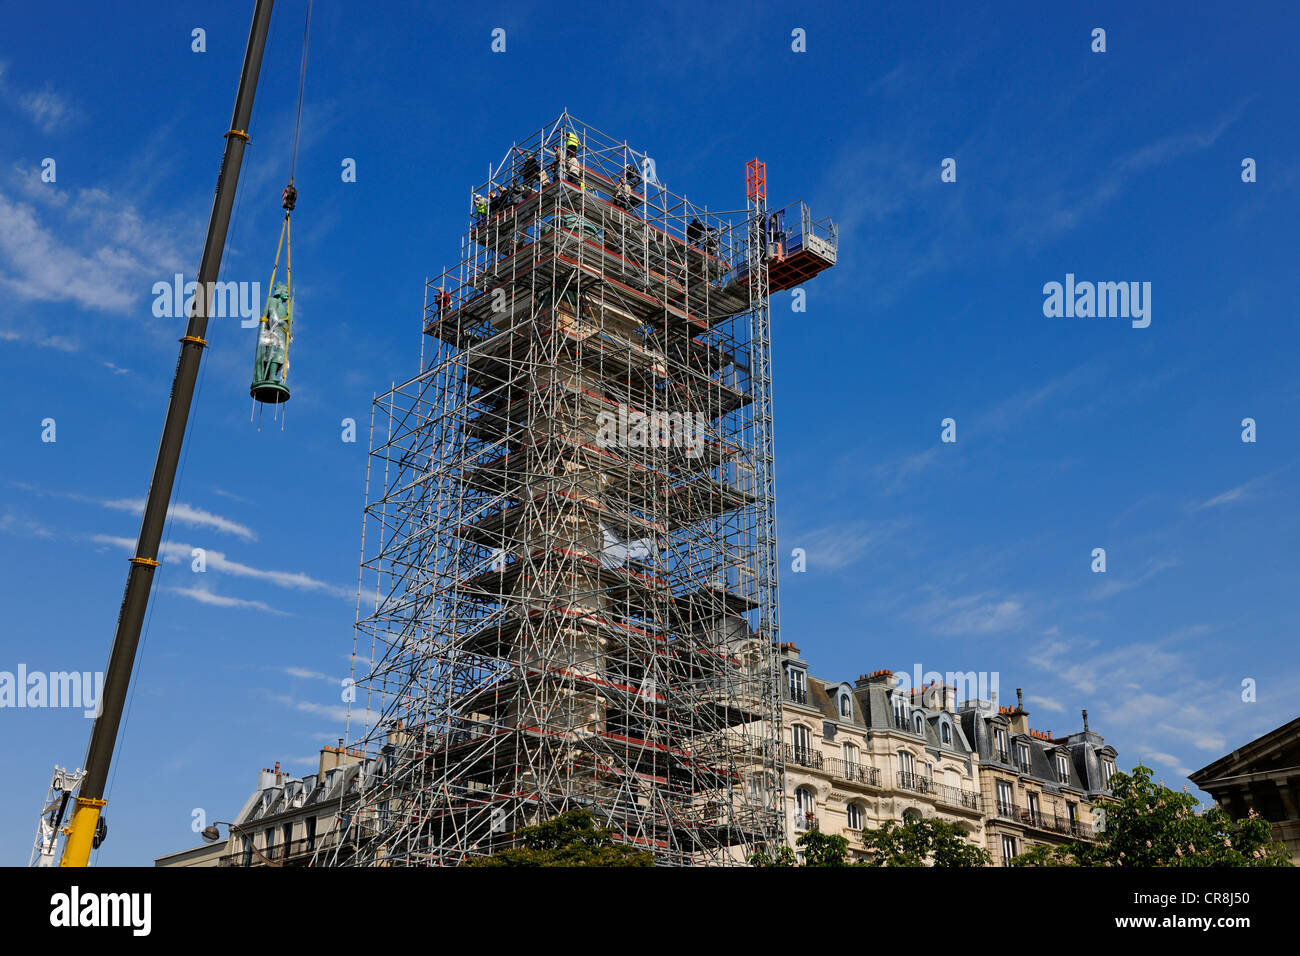 France, Paris, Place de la Nation, relocation of the statue Saint Louis on one of the two columns of the barrier - Stock Image